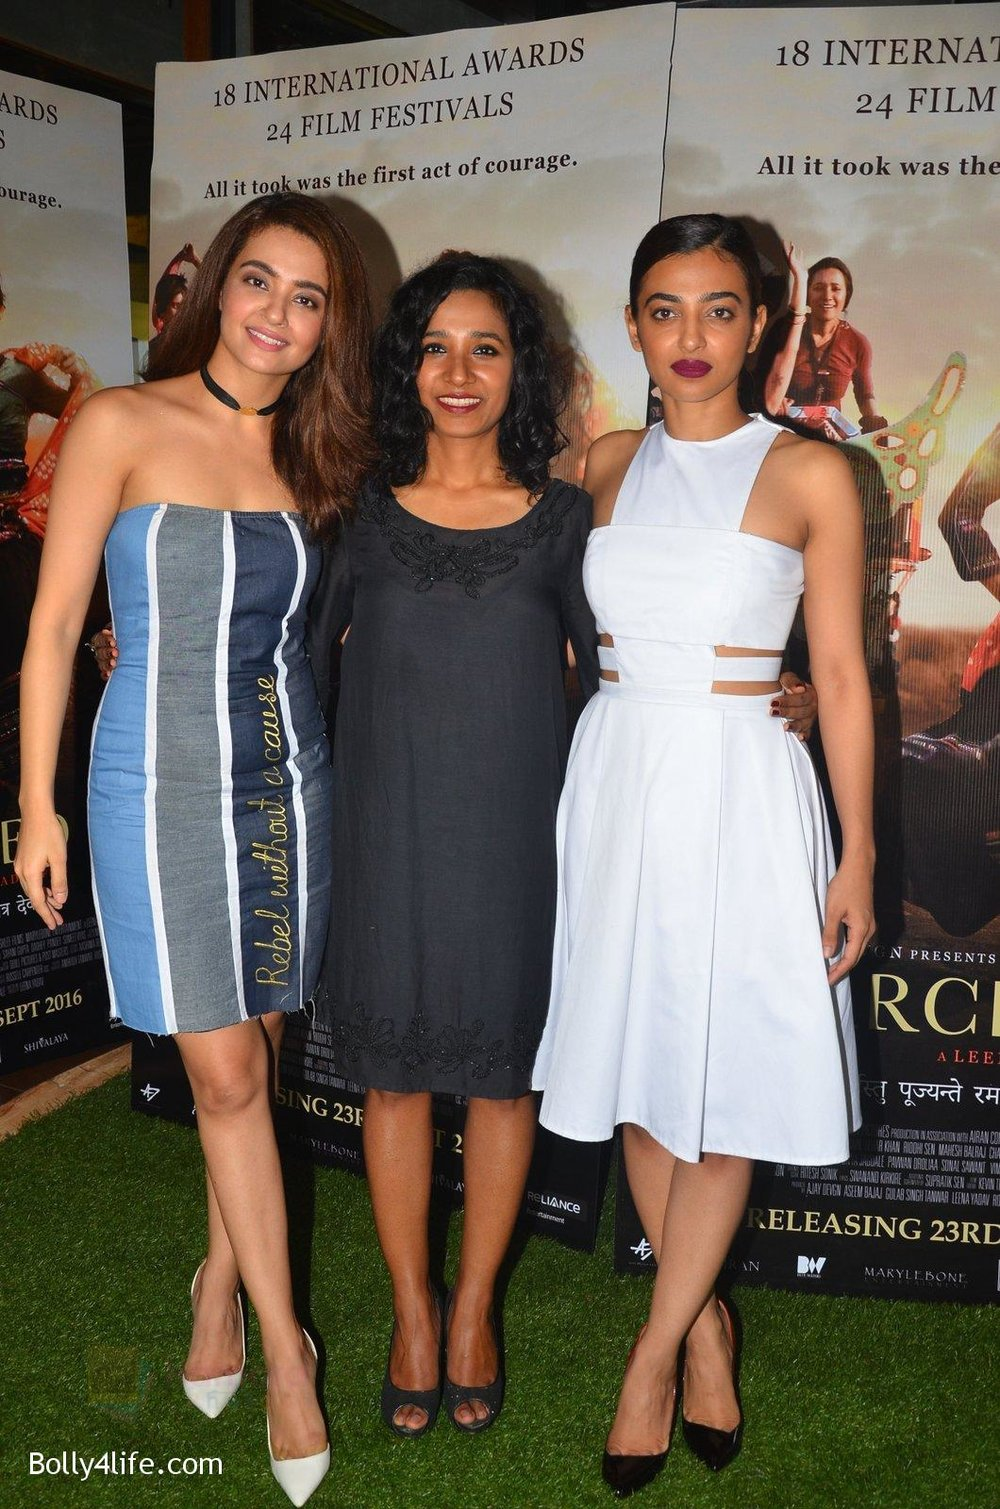 Surveen-Chawla-Tannishtha-Chatterjee-Radhika-Apte-at-Parched-Photoshoot-on-17th-Sept-2016-29.jpg